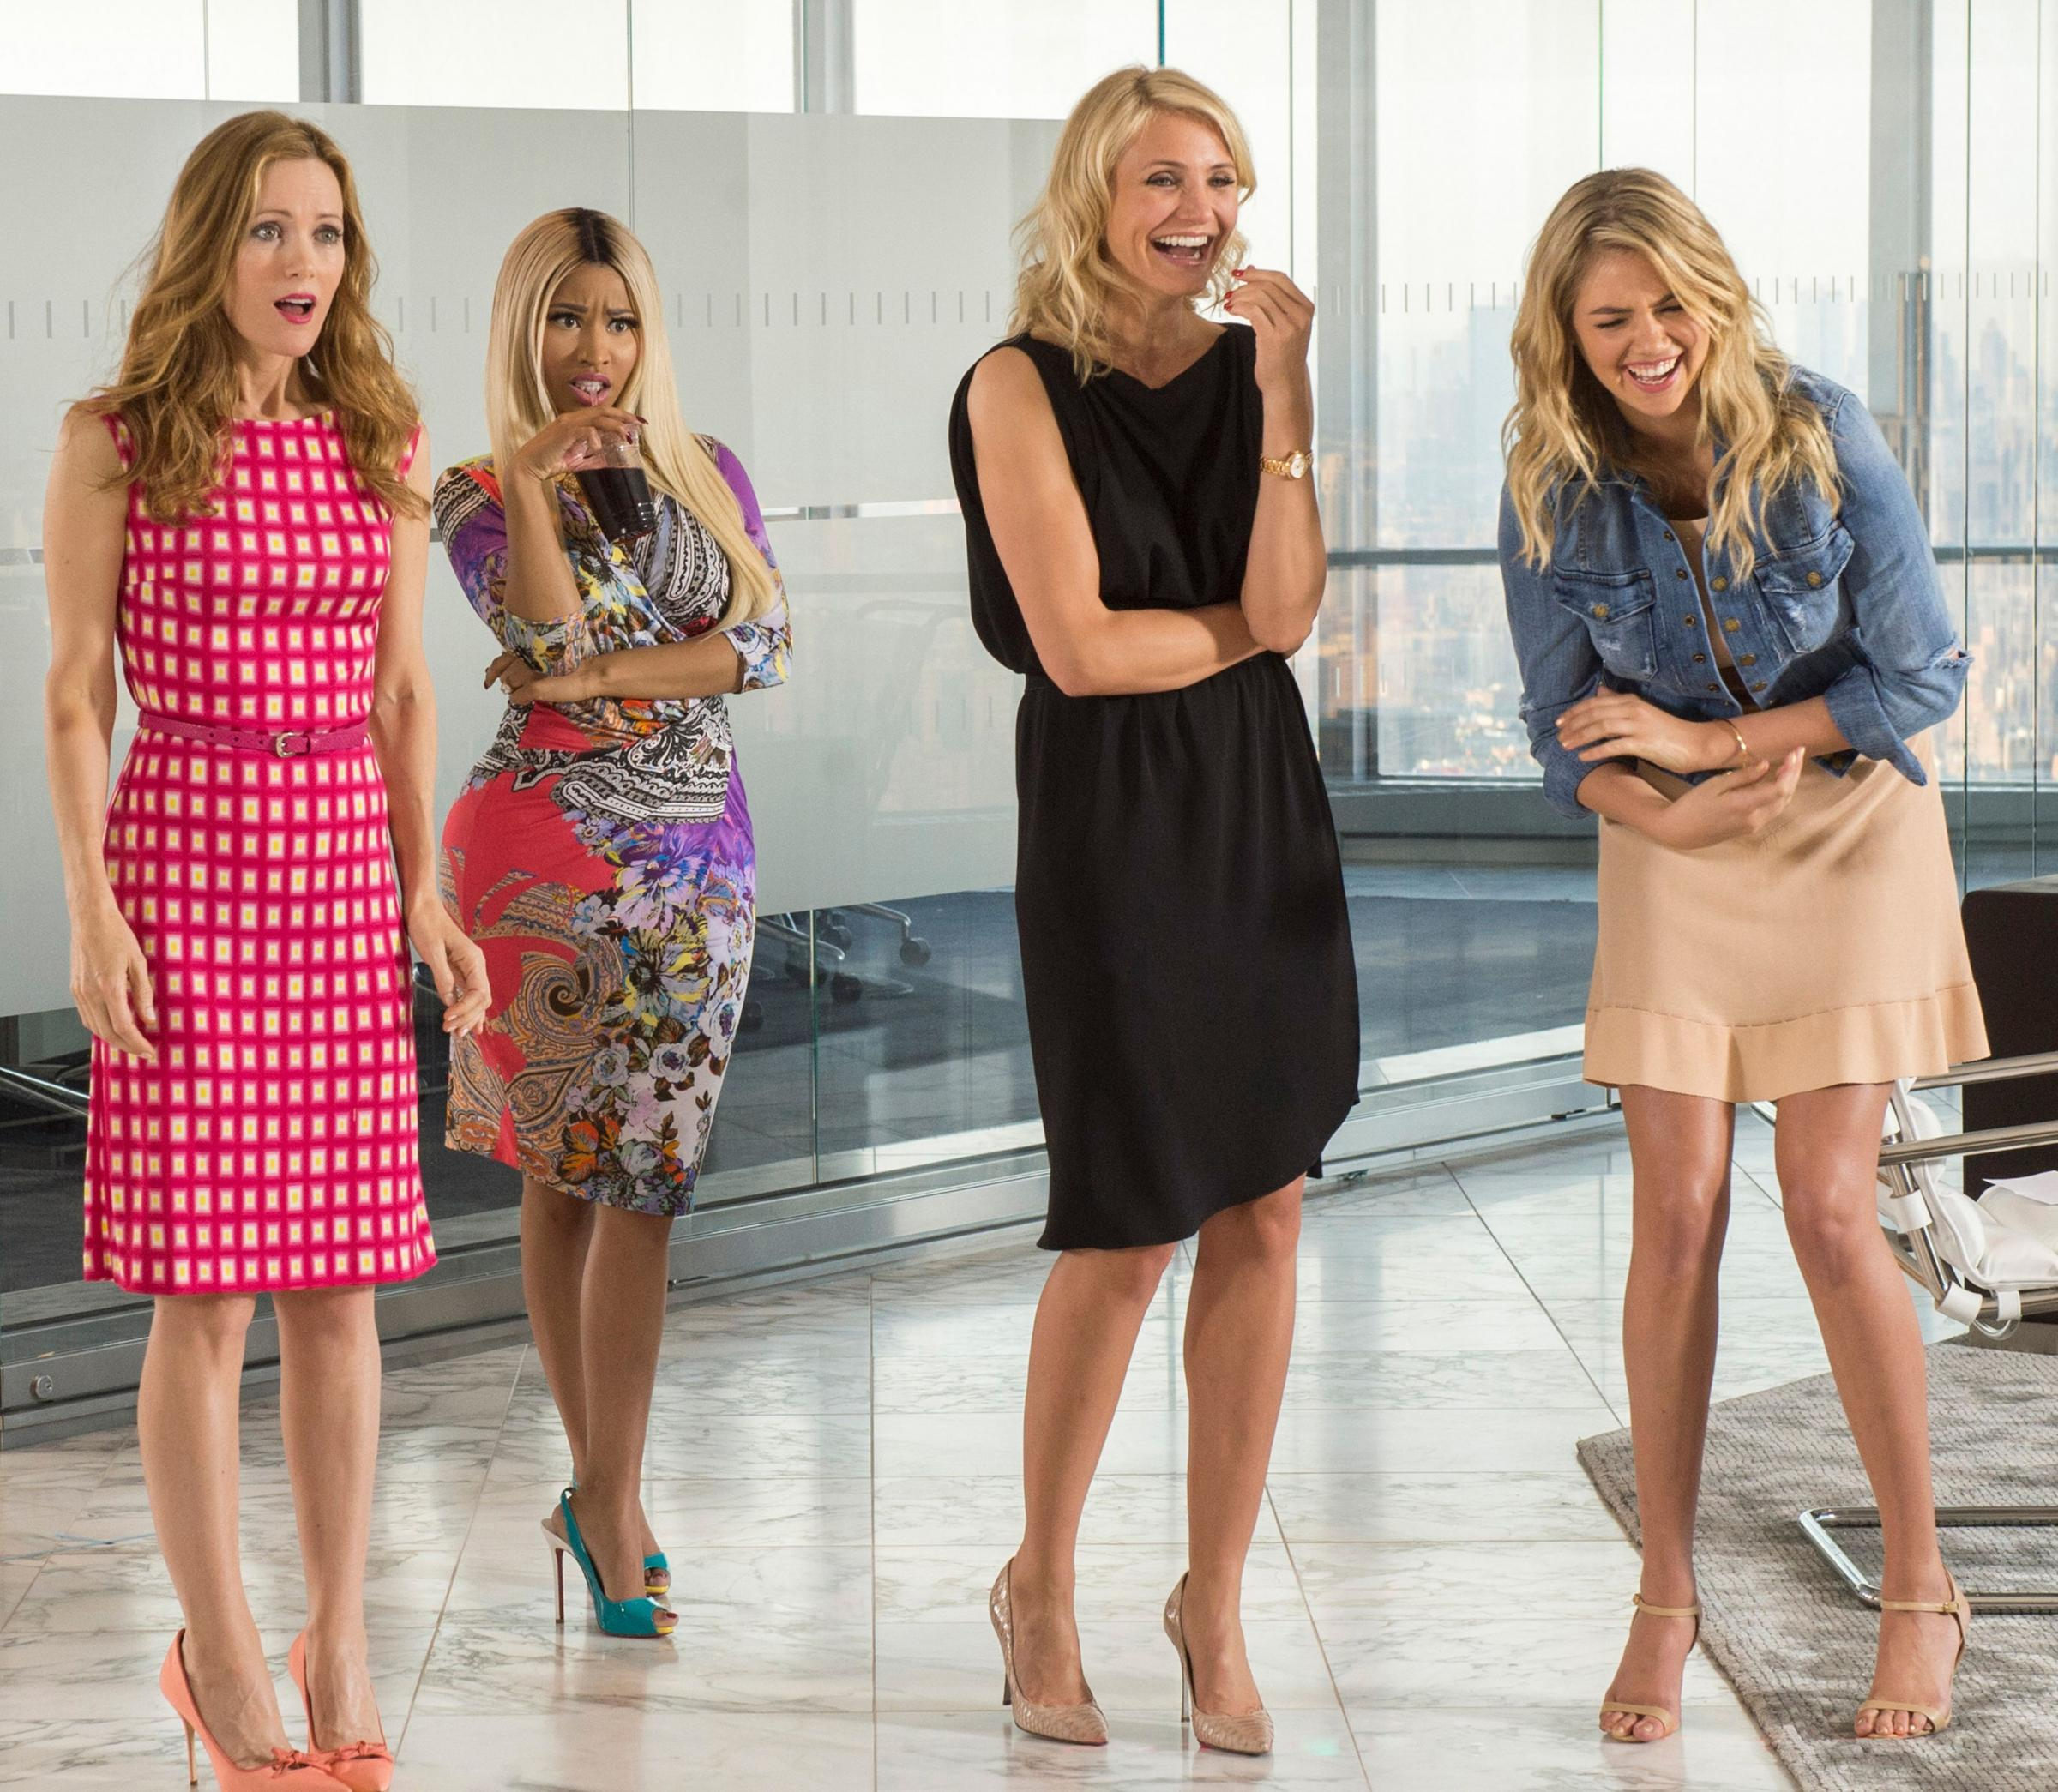 REVIEW: The Other Woman